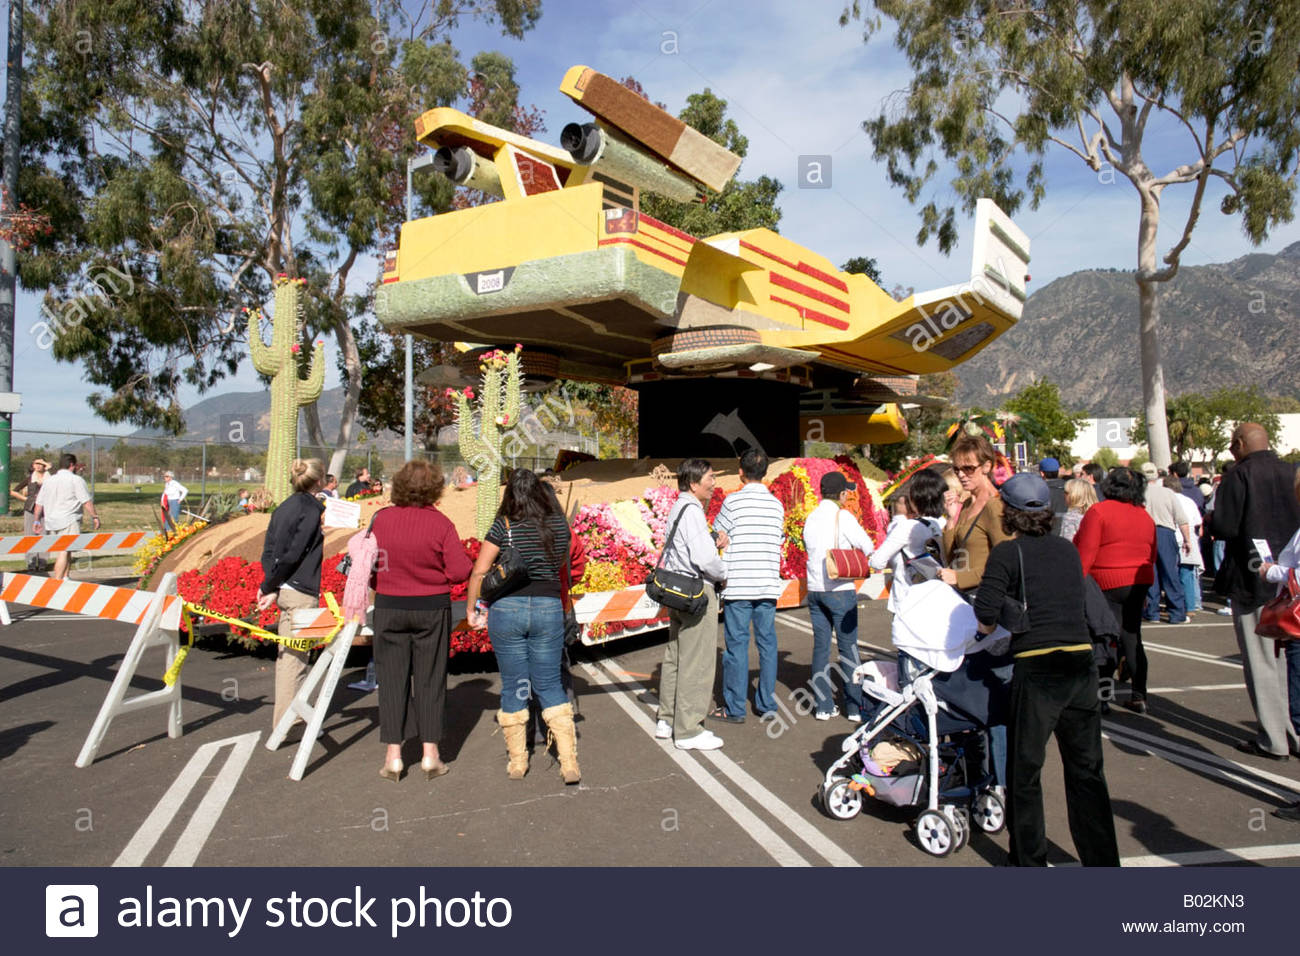 American Honda Motor Company Passport To The Future Rocketship Car At 2008 Rose Parade